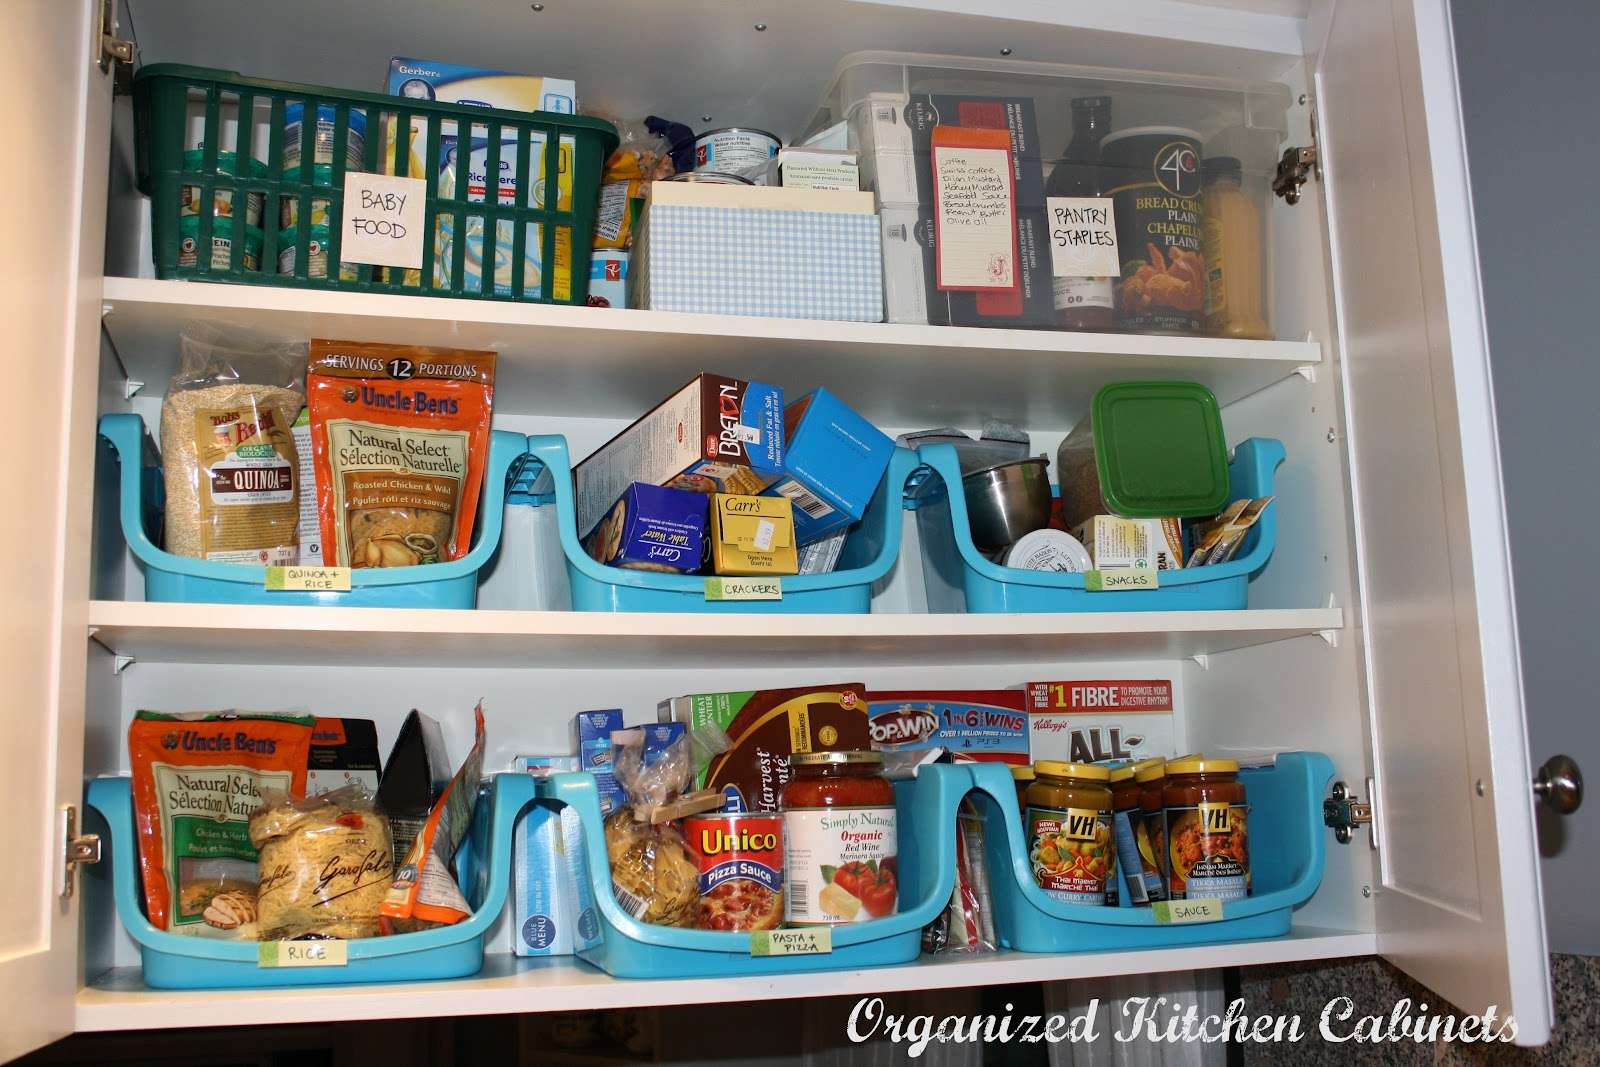 Simcoe Street: Organizing Kitchen Cupboards (Food Storage)